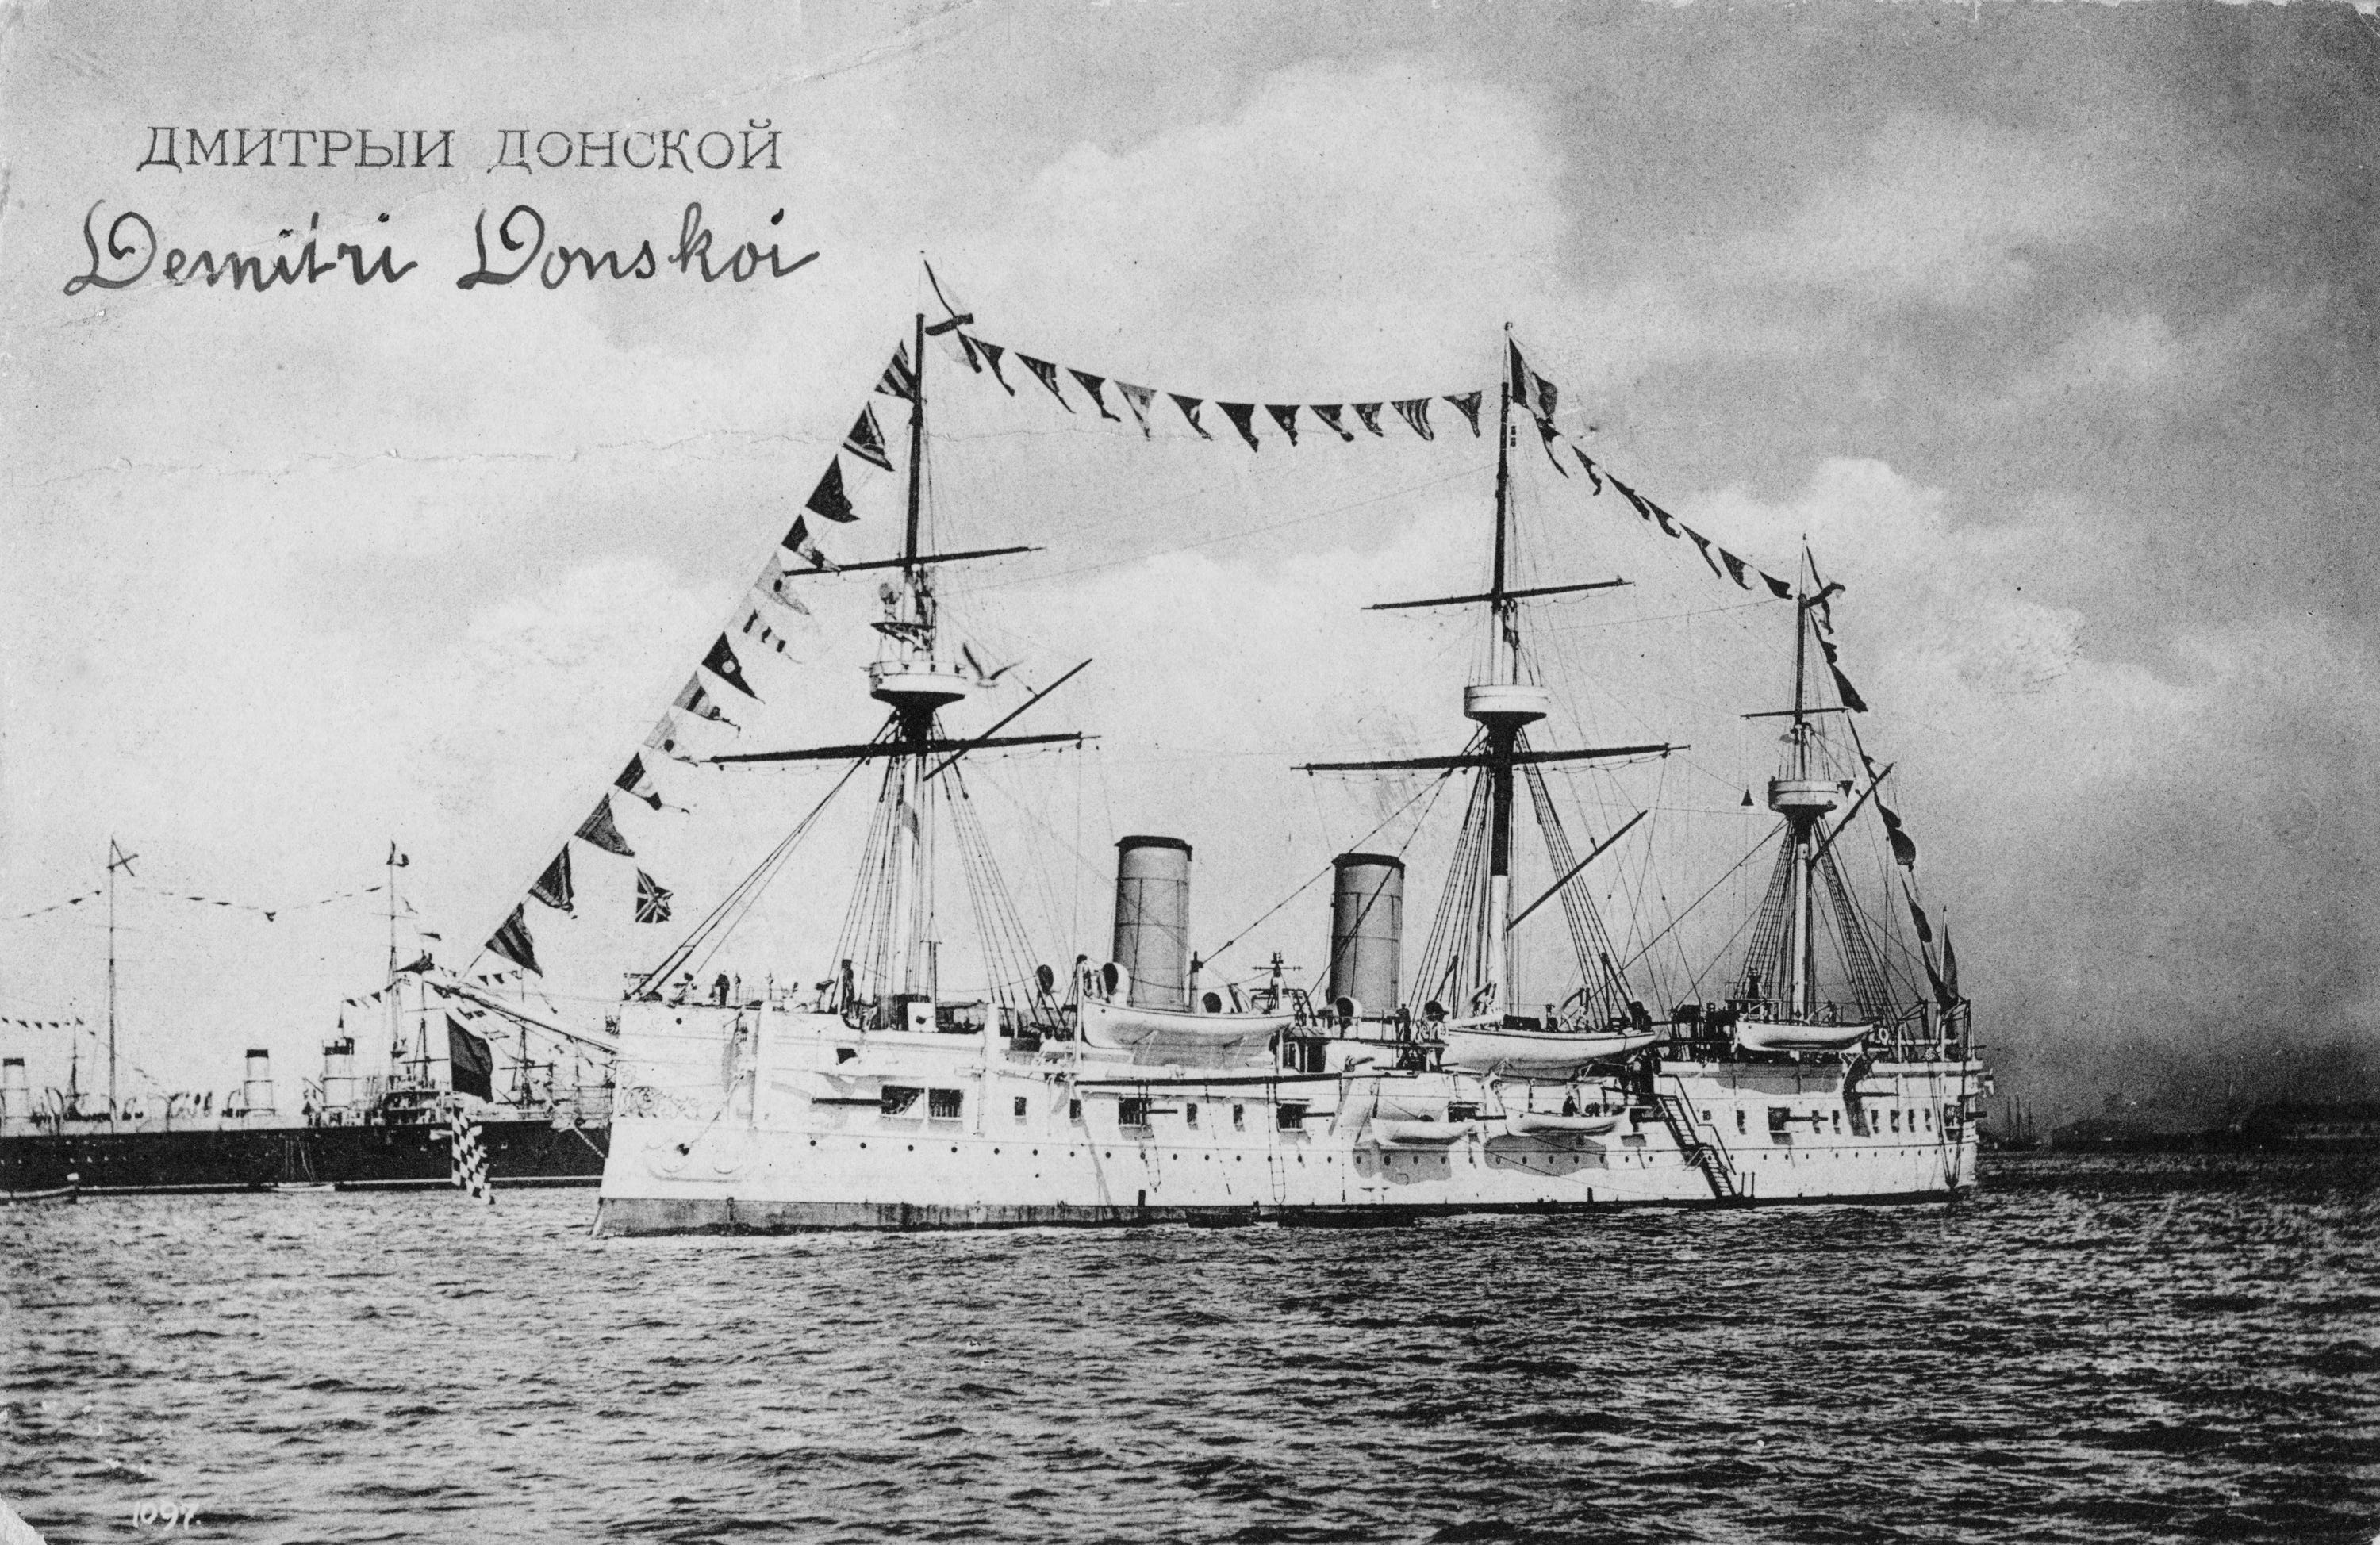 The Dmitrii Donskoi Armoured Cruiser of the Imperial Russian Navy on Oct. 3,1891 at anchor off Brest, France.